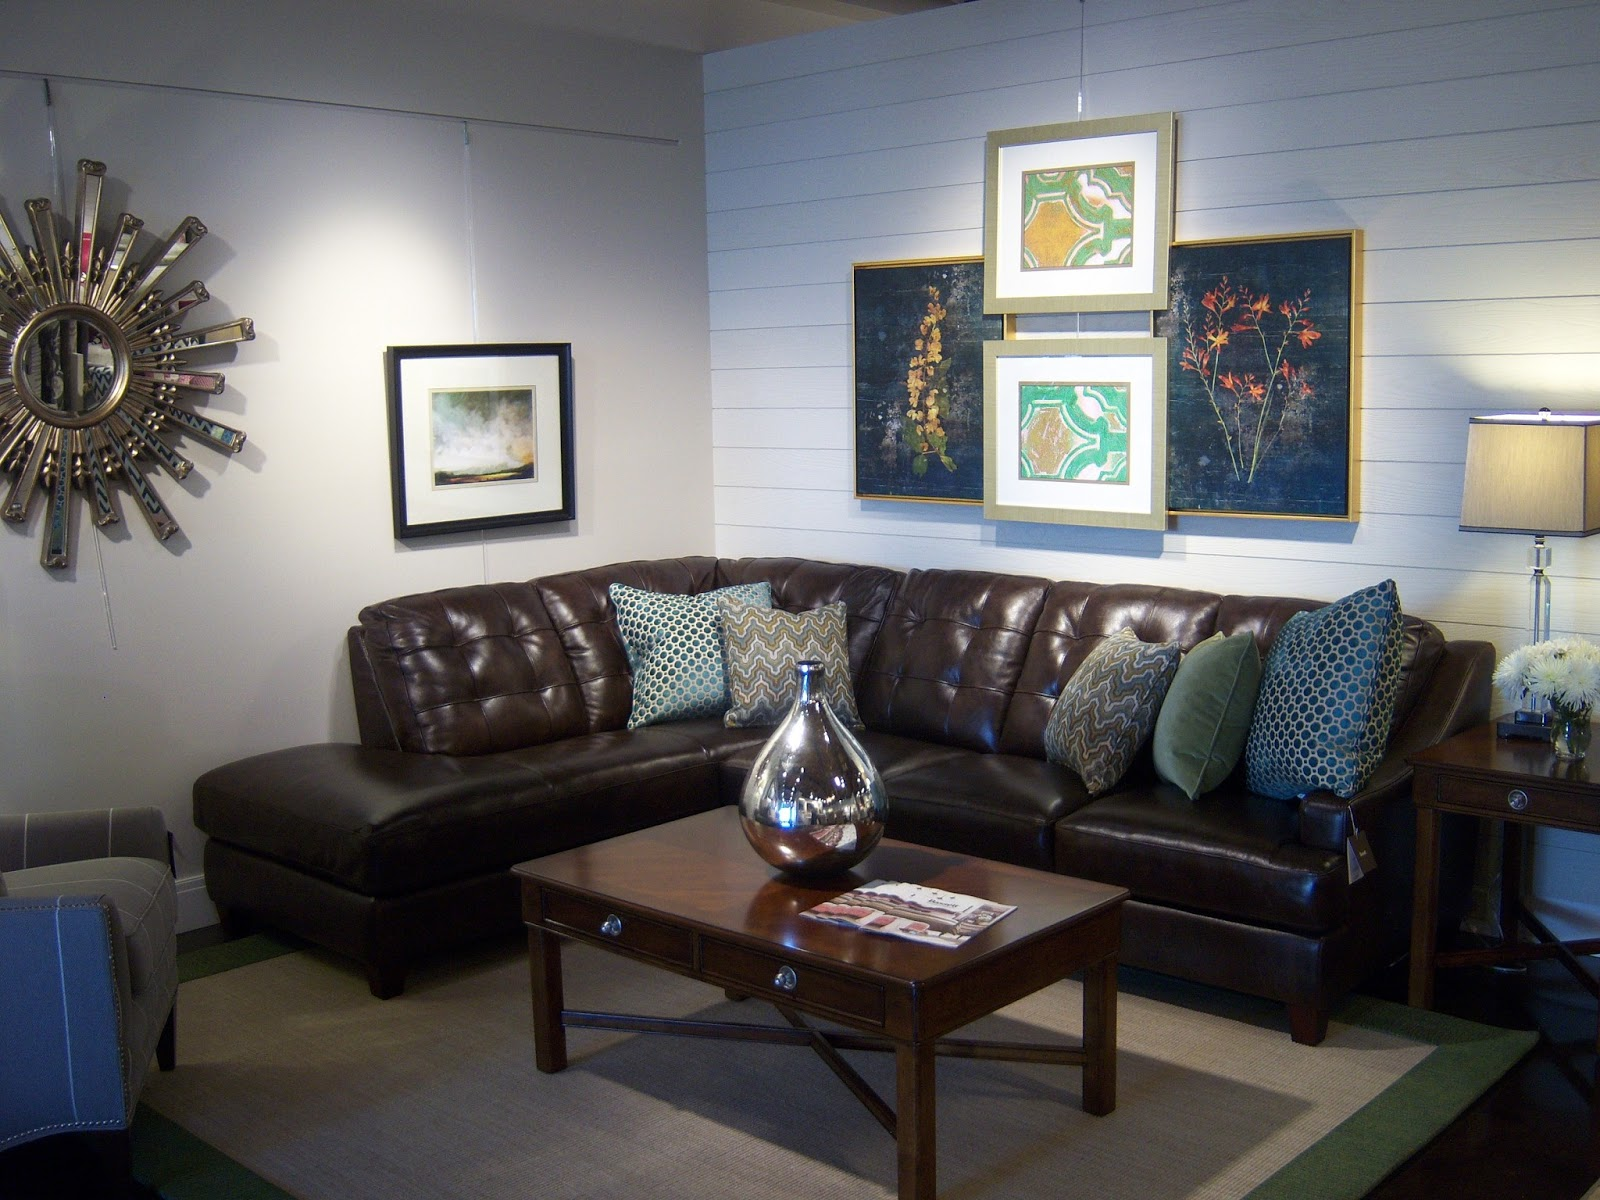 Upholstery shop near me 2016 for Home decor outlet near me